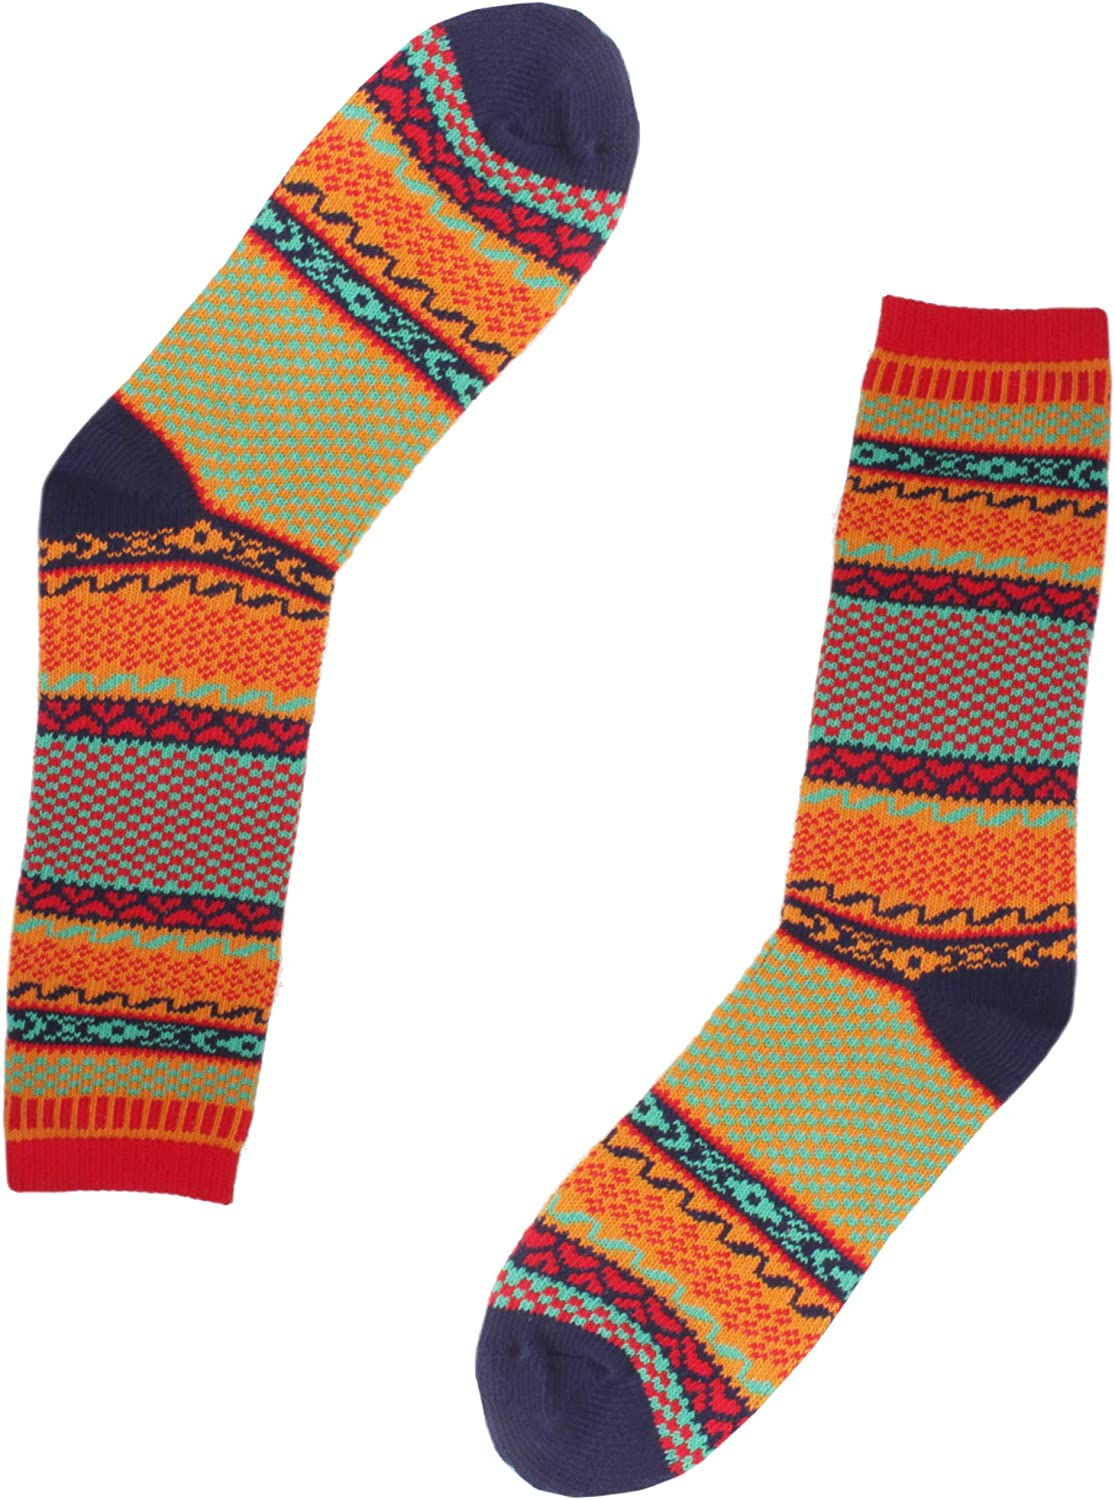 Womens Vintage Style Knitted Colorful Cotton Crew Socks